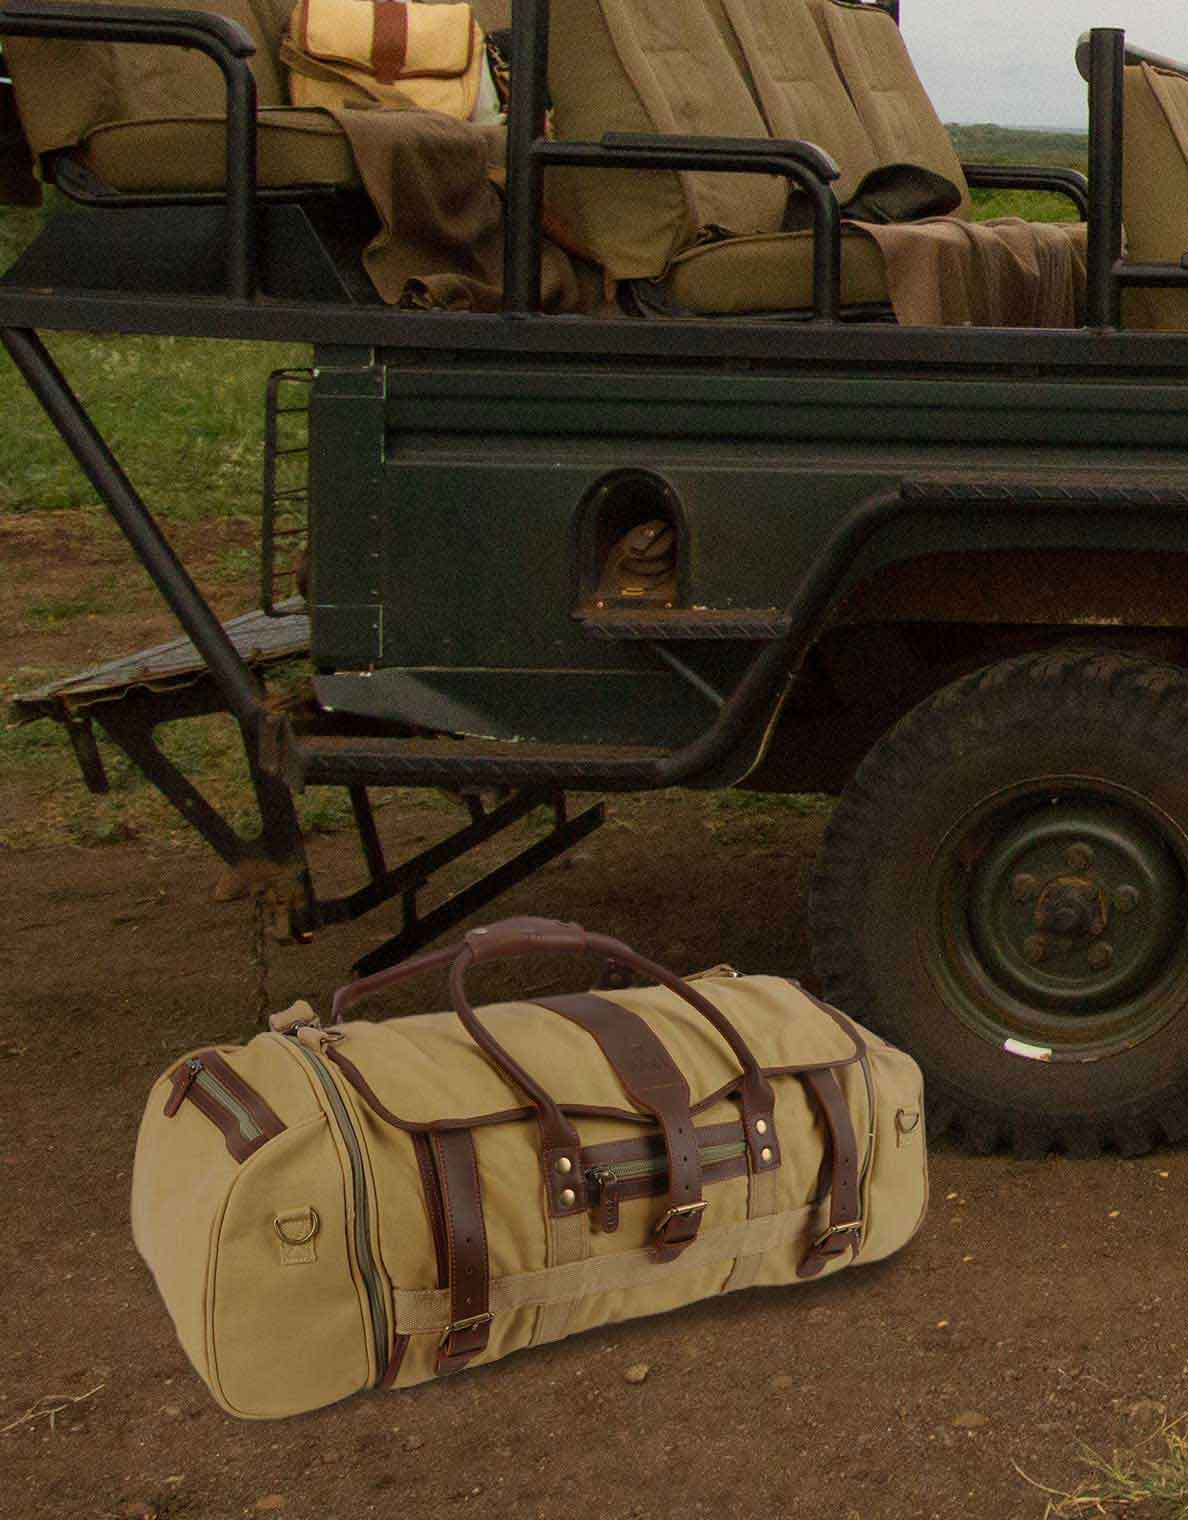 Voyager III Suit Bag Protector by The Safari Store